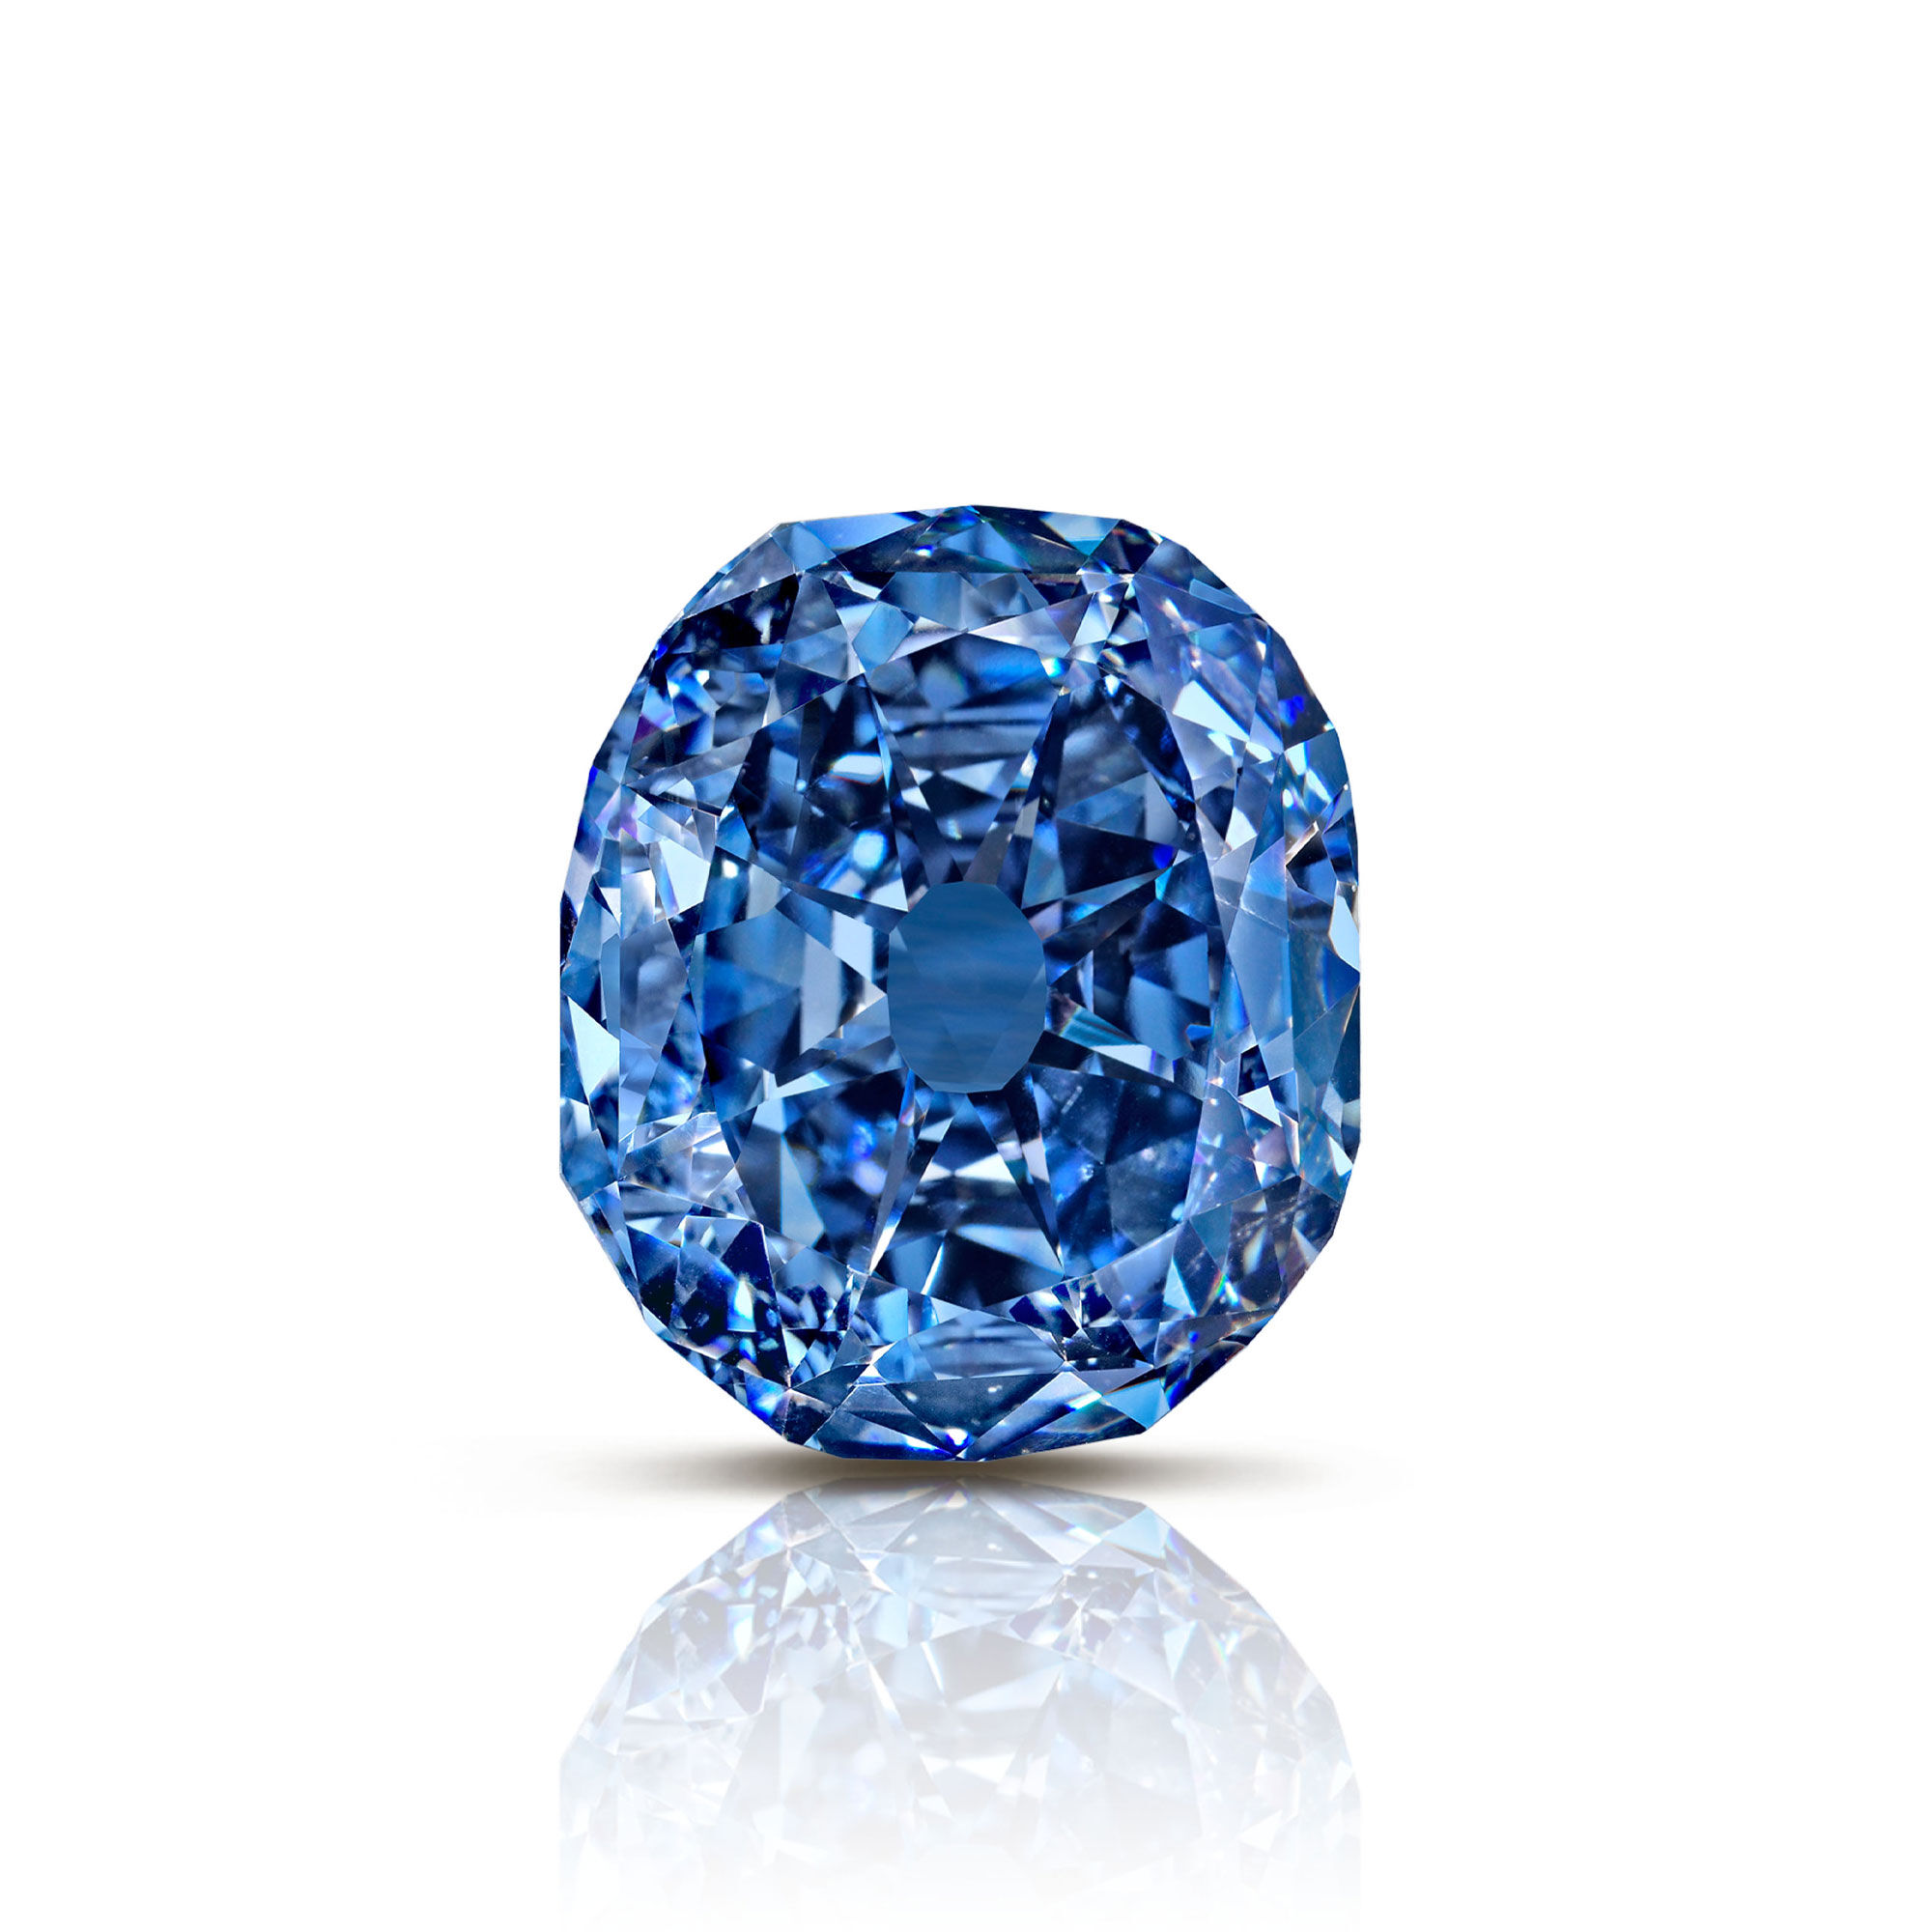 The Wittlesbach-Graff famous blue diamond